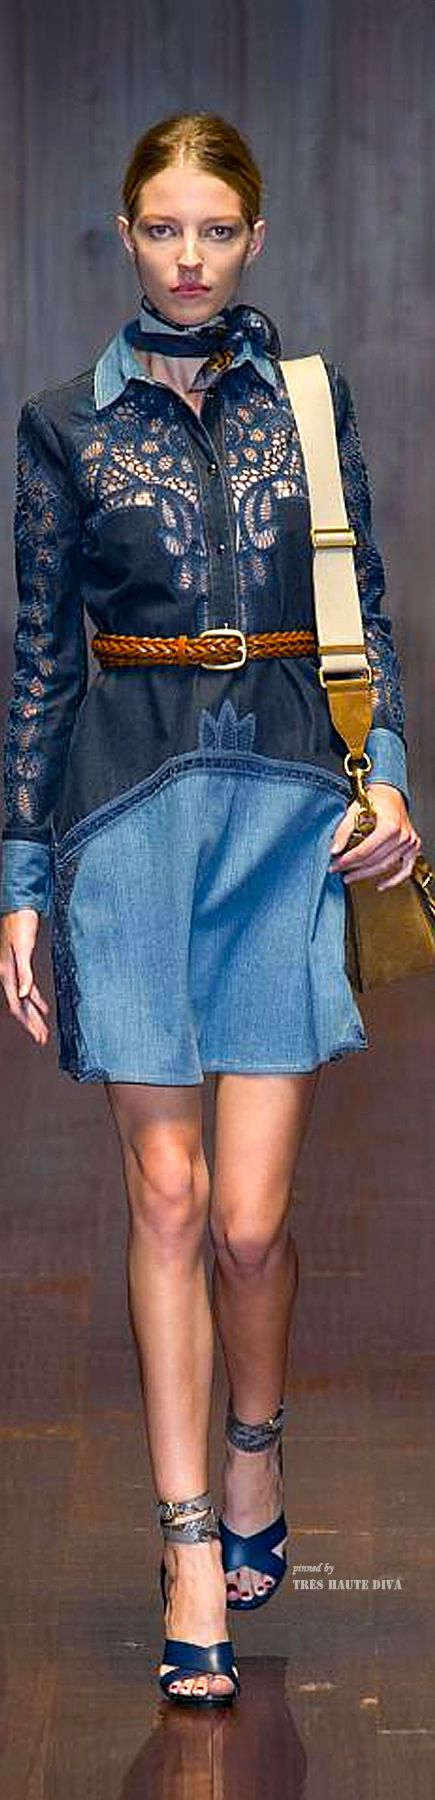 We see very tailored denim this past runway. #MFW Gucci Spring Summer 2015 RTW